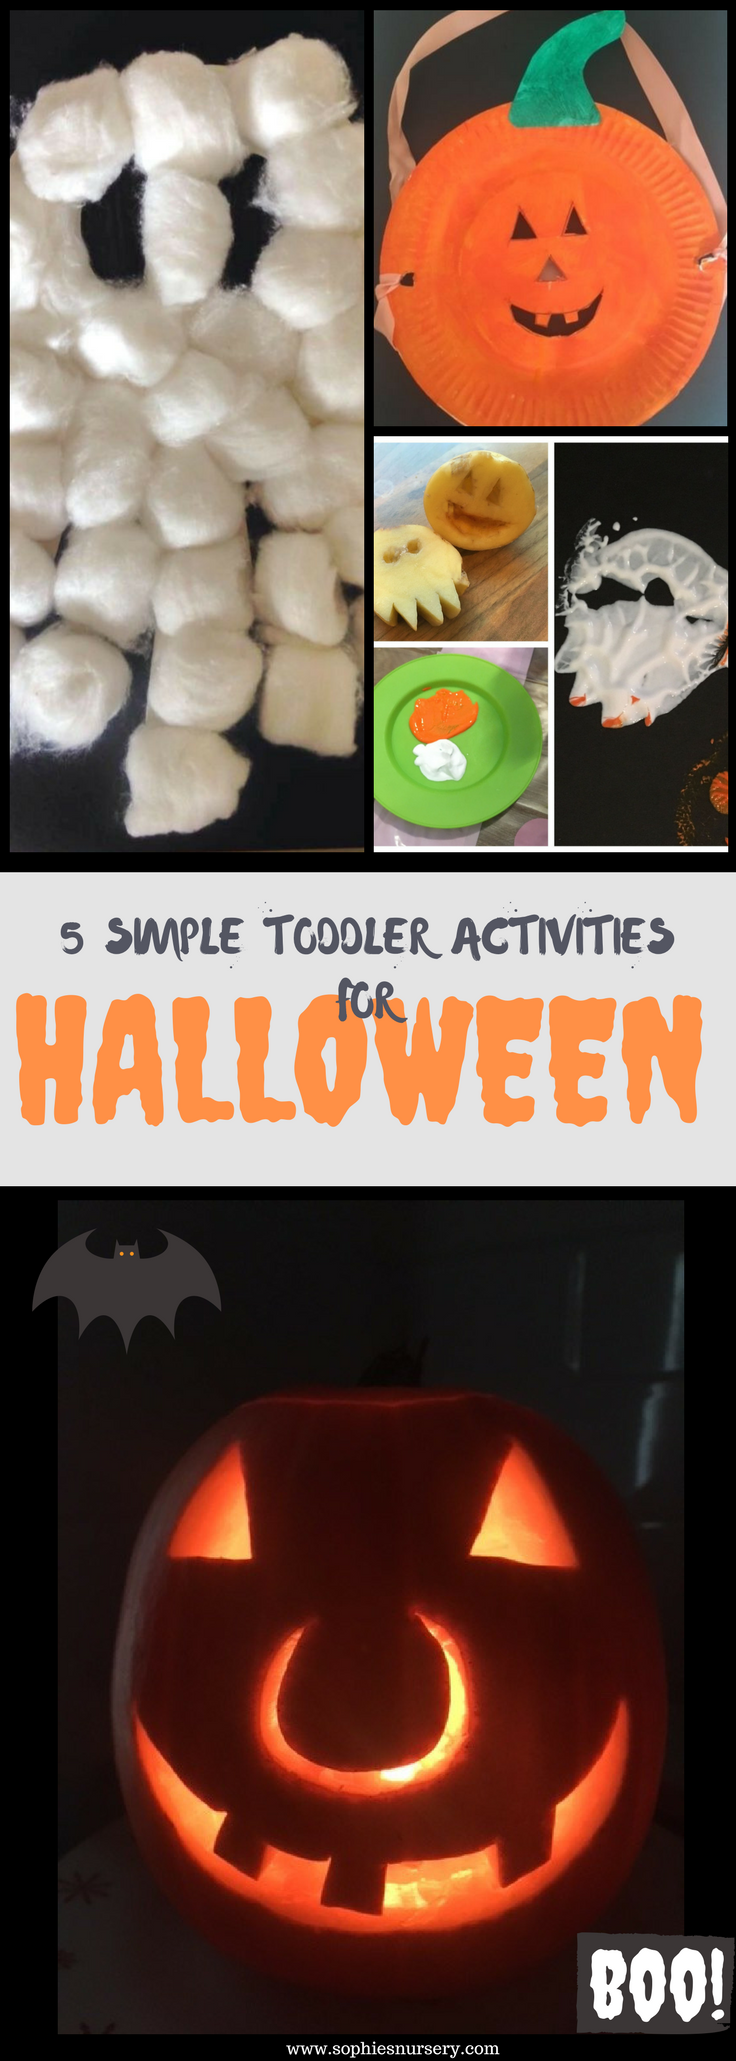 Need some toddler appropriate Halloween ideas? These simple Halloween activities for toddlers & preschool are easy to put together & will provide plenty of fun for young children!